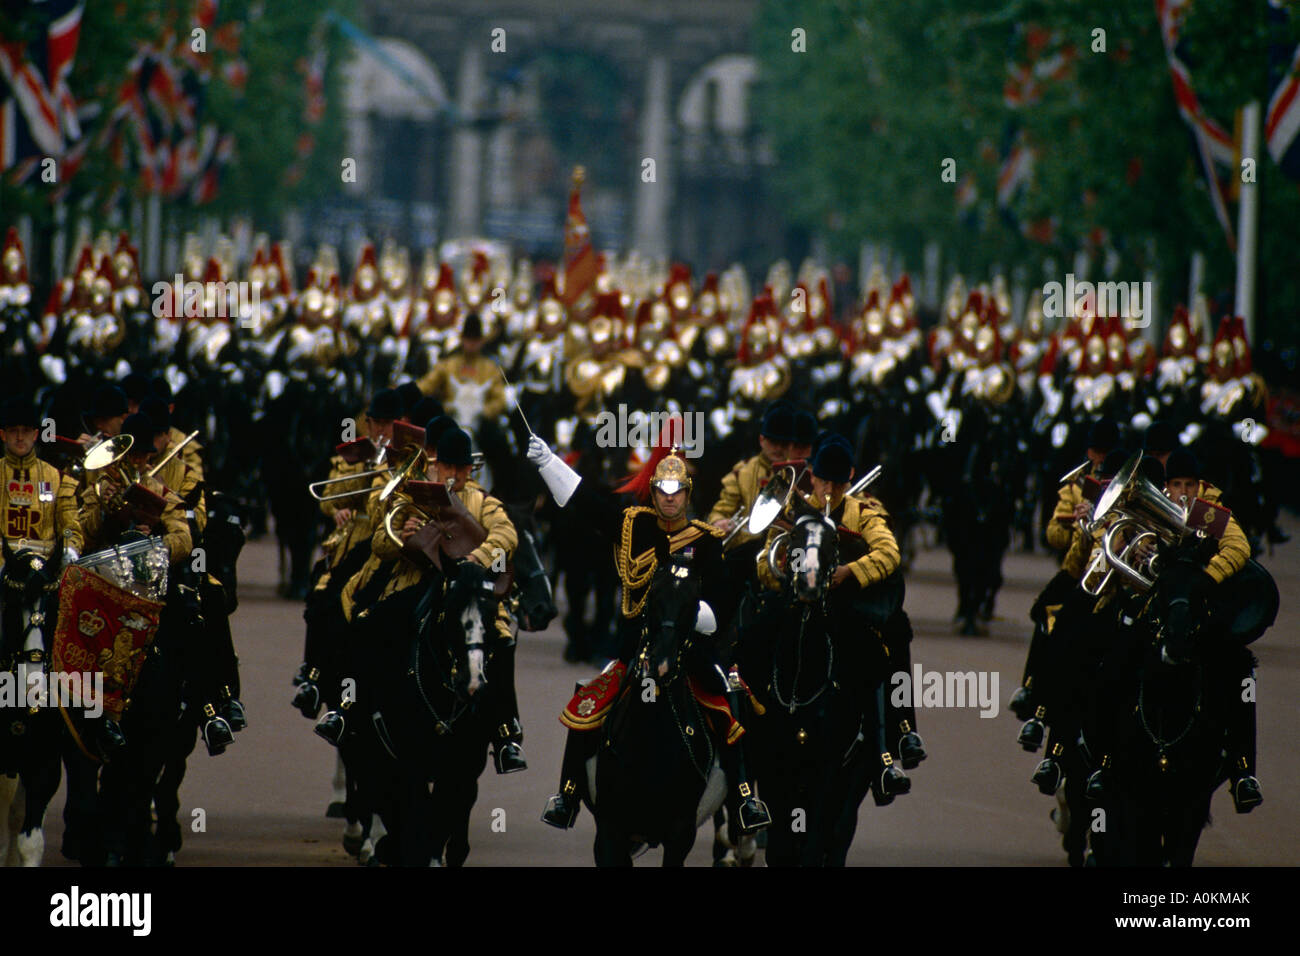 The band of the Life Guards Household Cavalry parade down The Mall in London, at the annual Trooping the Colour - Stock Image